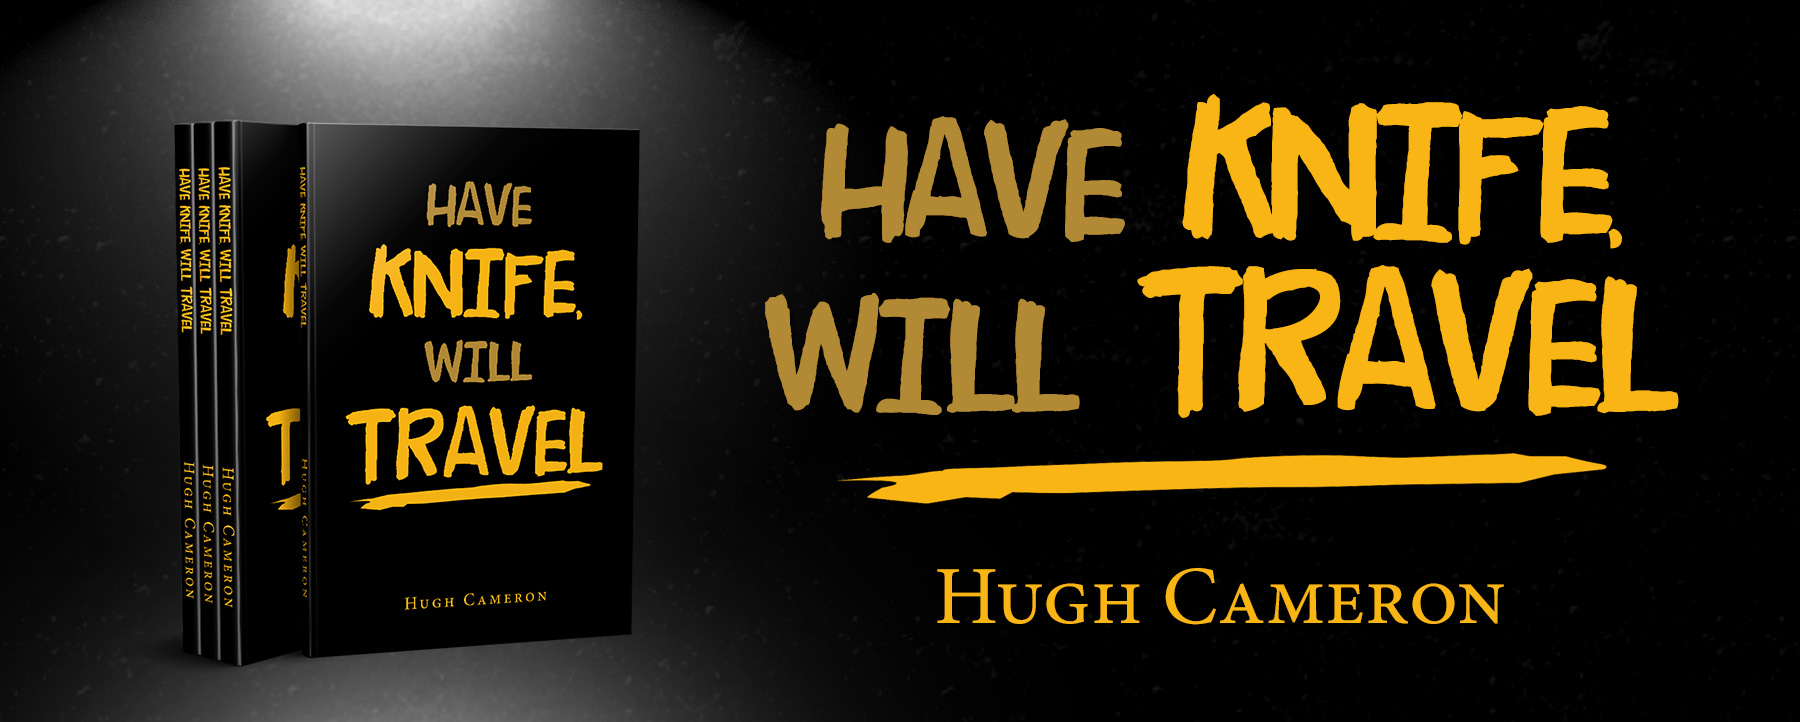 HAVE KNIFE, WILL TRAVEL | Hugh Cameron